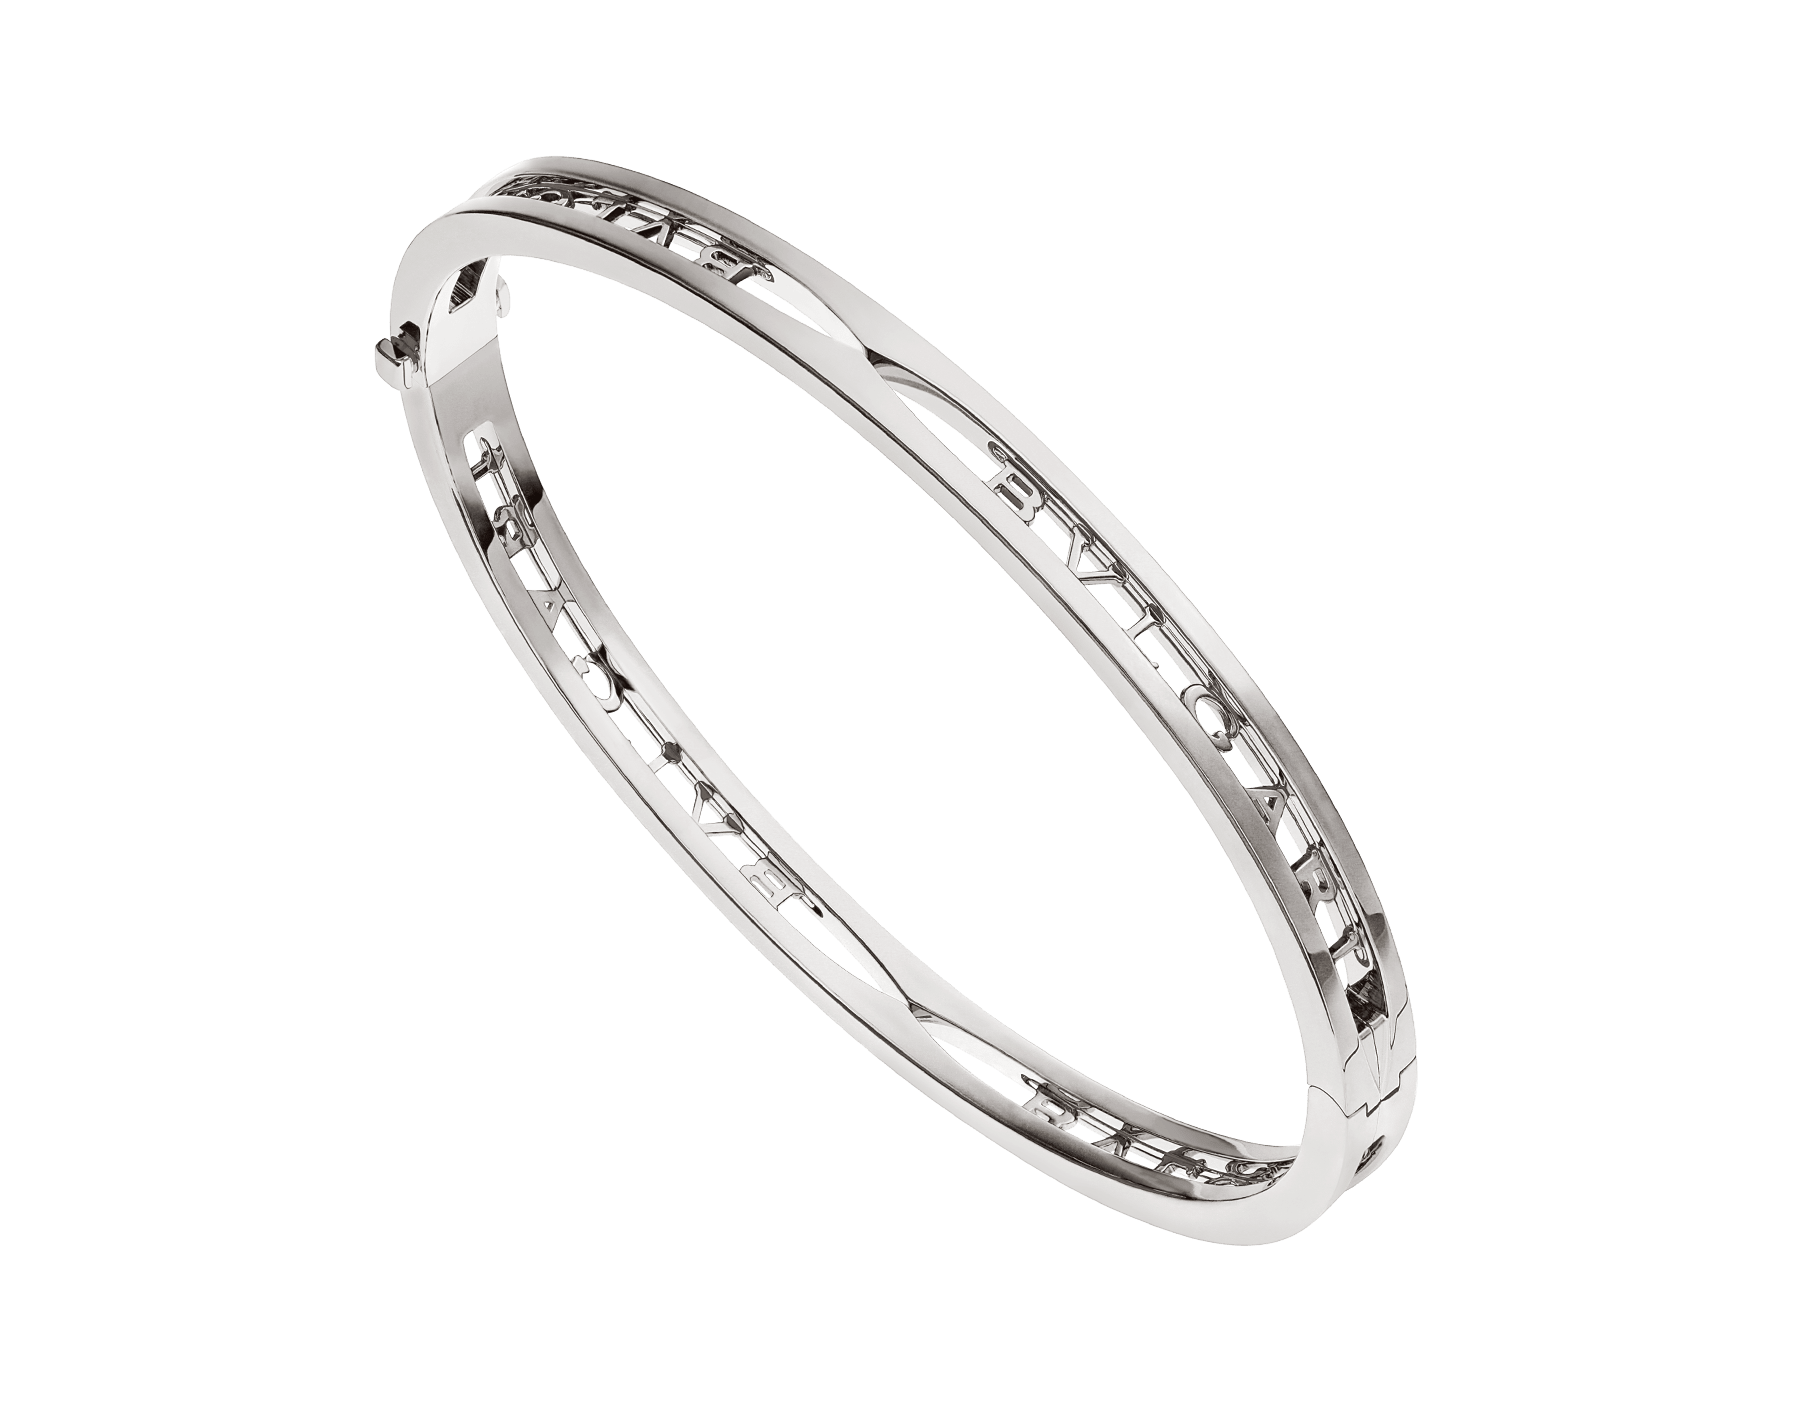 B.zero1 18 kt white gold bangle bracelet with BVLGARI logo on the spiral BR858725 image 1